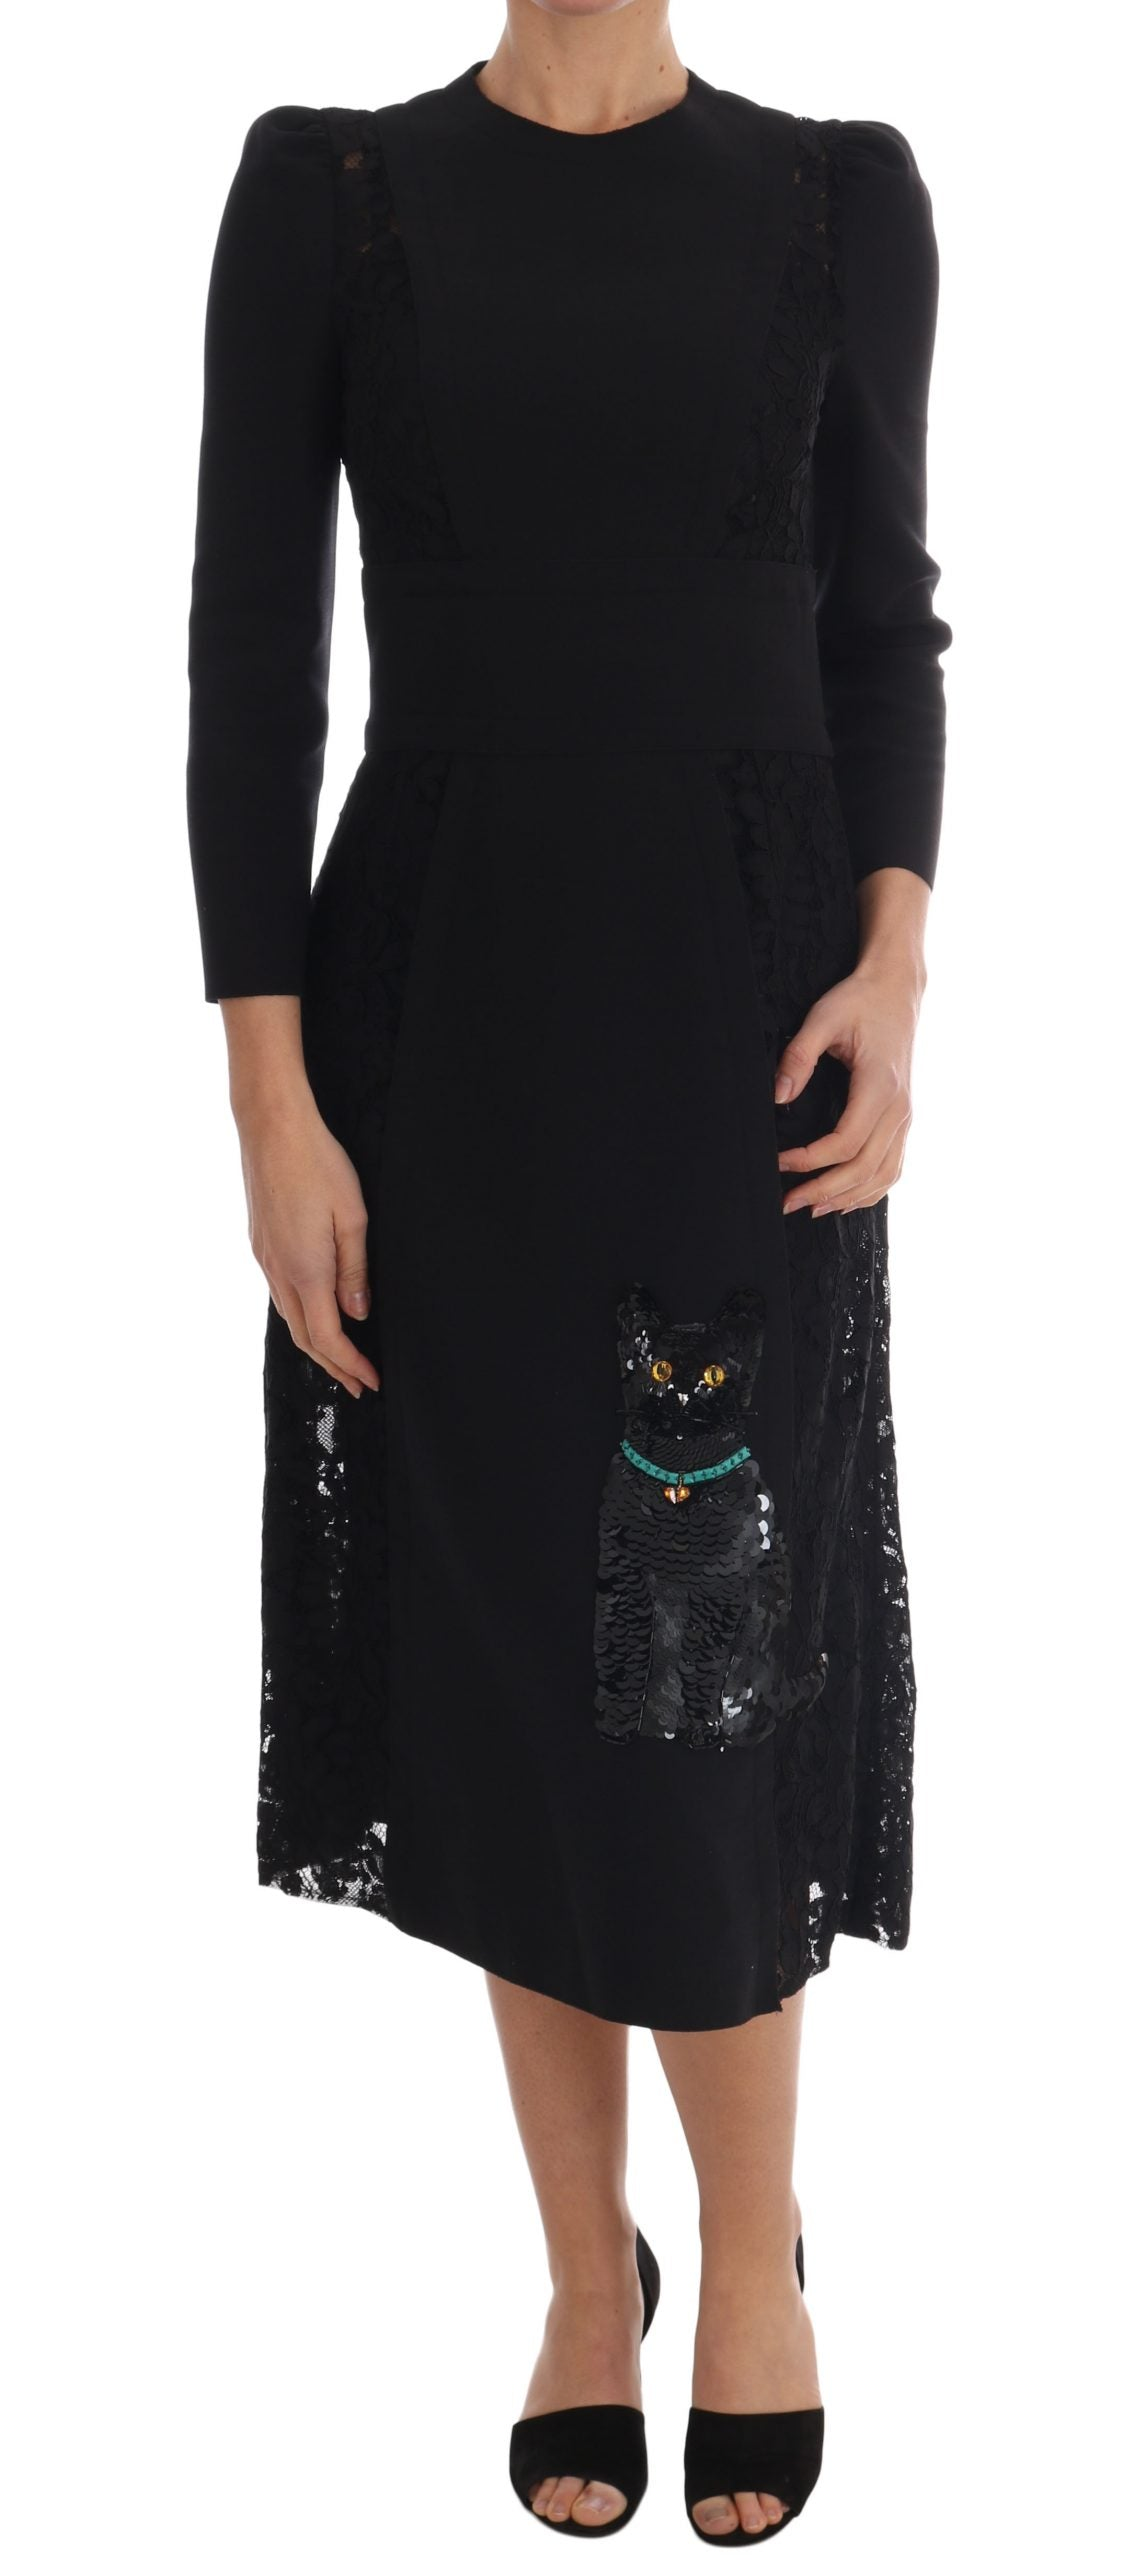 Black Crystal Embriodered Cat Dress